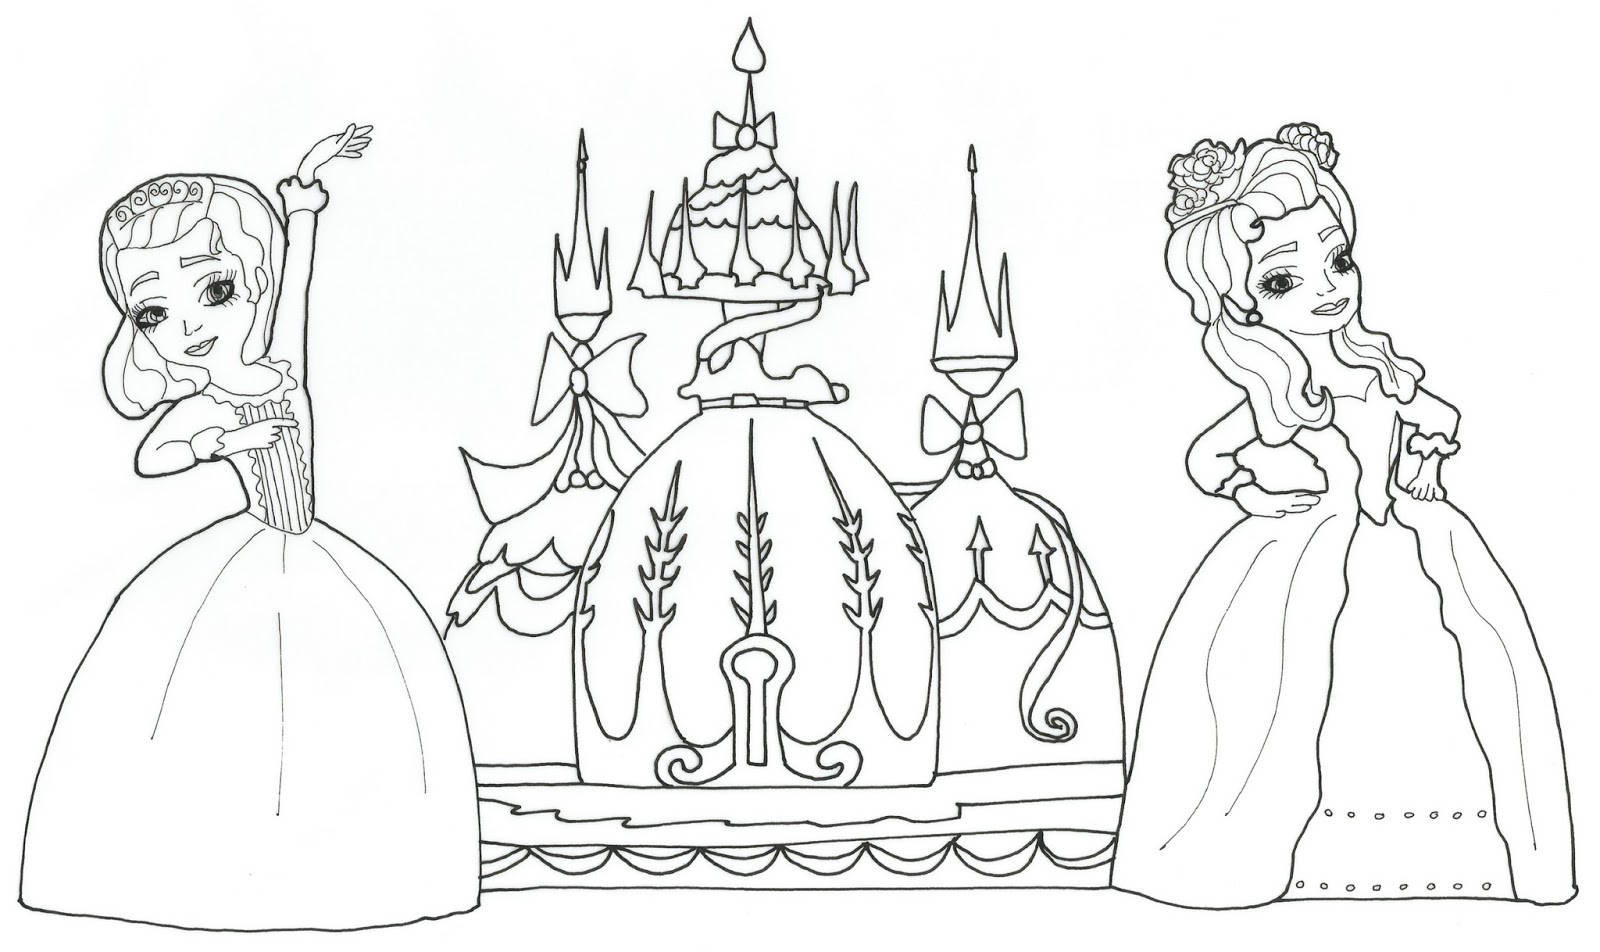 Sofia The First Coloring Pages: The Shy Princess - Sofia the First ...